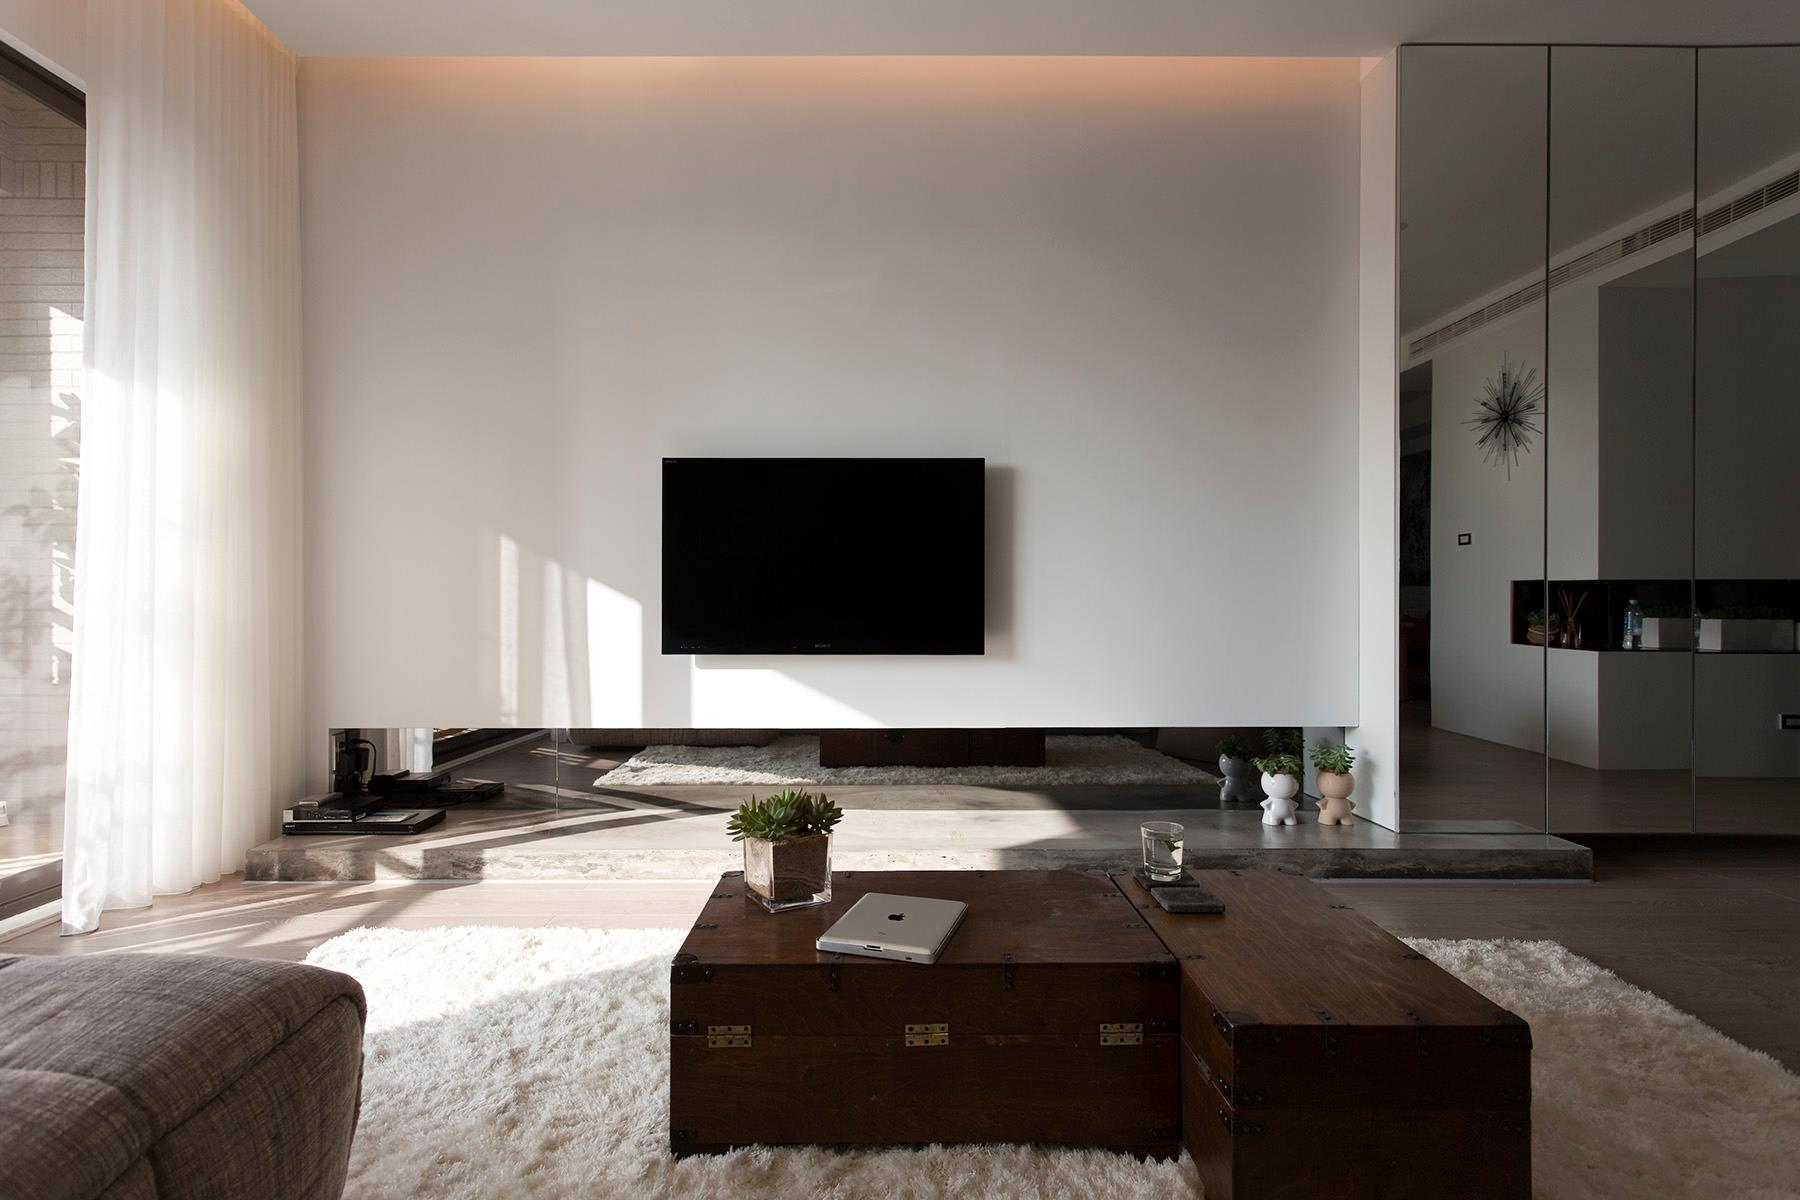 Wide White Carpet Rug Placed under Grey Sofa and Wooden Briefcase Tables for Contemporary Living Room